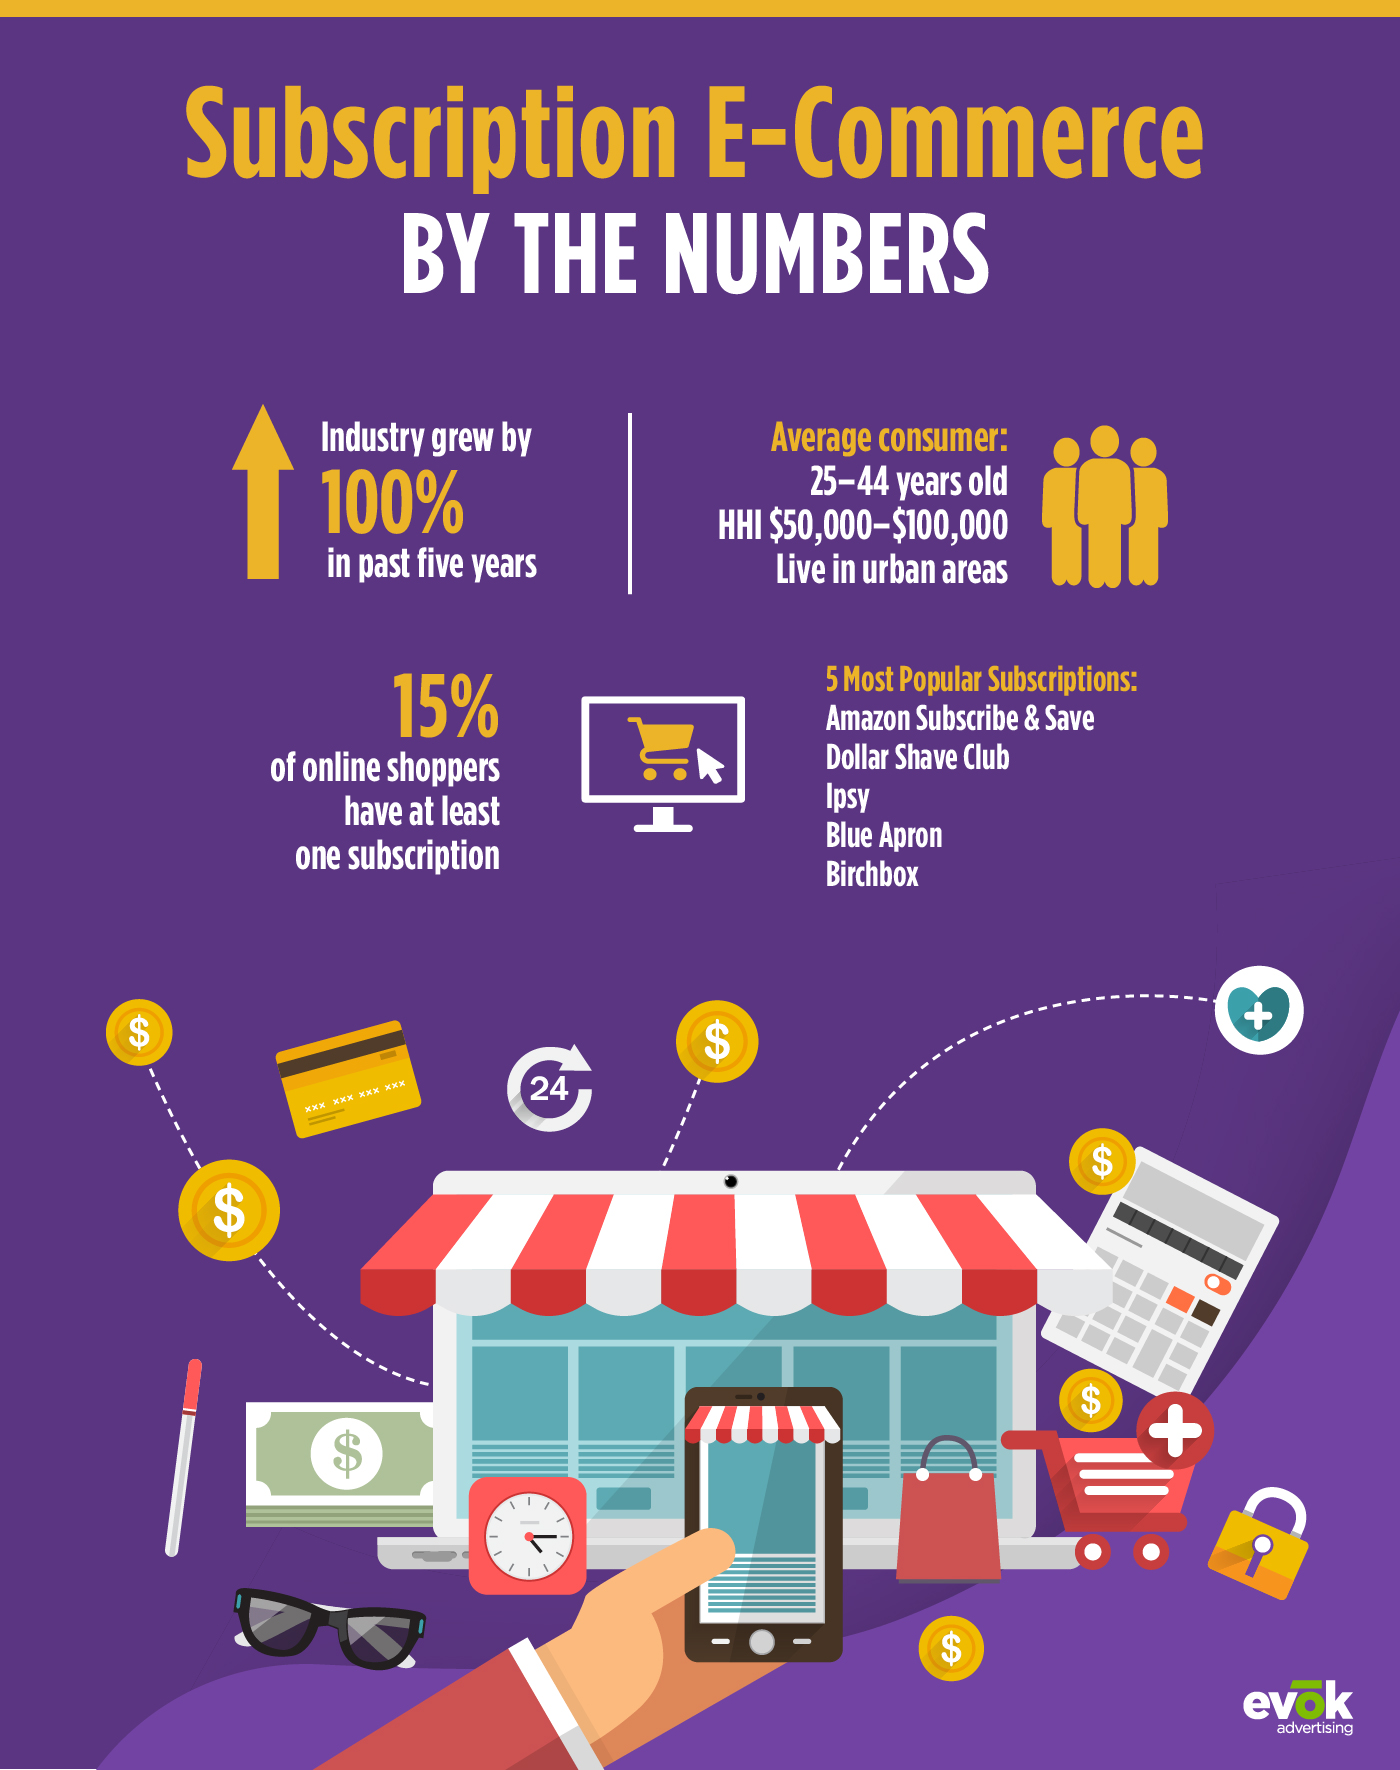 Subscription E-Commerce by the Numbers